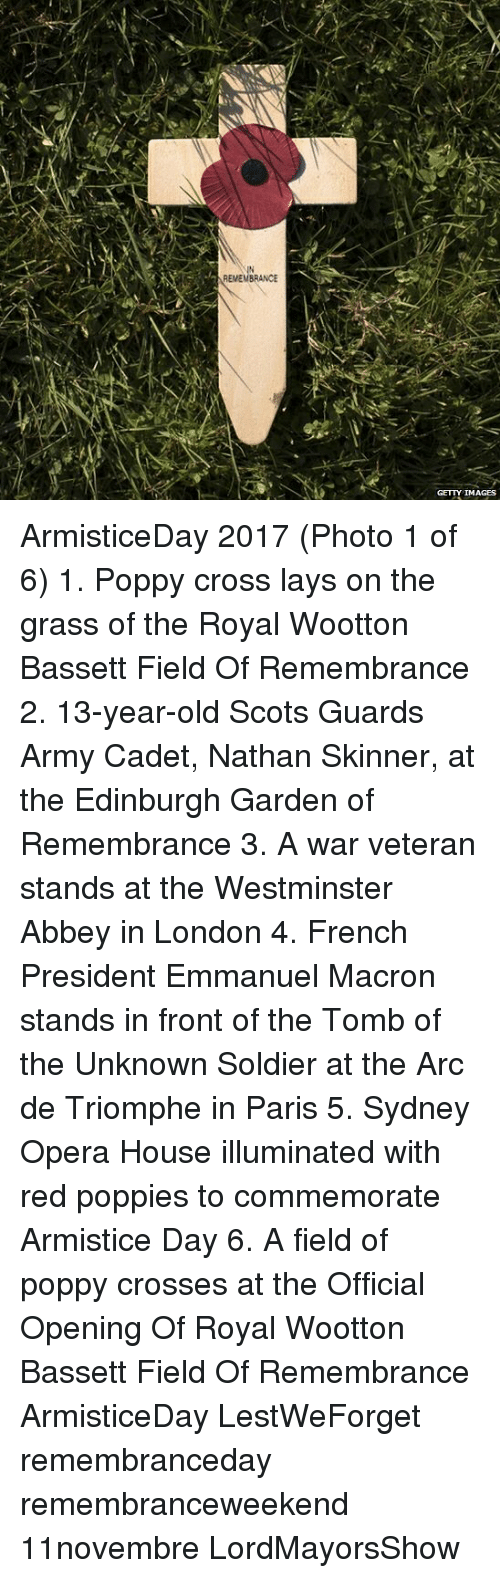 Emmanuel Macron: IN  EMEMBRANCE  GETTY IMAGES ArmisticeDay 2017 (Photo 1 of 6) 1. Poppy cross lays on the grass of the Royal Wootton Bassett Field Of Remembrance 2. 13-year-old Scots Guards Army Cadet, Nathan Skinner, at the Edinburgh Garden of Remembrance 3. A war veteran stands at the Westminster Abbey in London 4. French President Emmanuel Macron stands in front of the Tomb of the Unknown Soldier at the Arc de Triomphe in Paris 5. Sydney Opera House illuminated with red poppies to commemorate Armistice Day 6. A field of poppy crosses at the Official Opening Of Royal Wootton Bassett Field Of Remembrance ArmisticeDay LestWeForget remembranceday remembranceweekend 11novembre LordMayorsShow